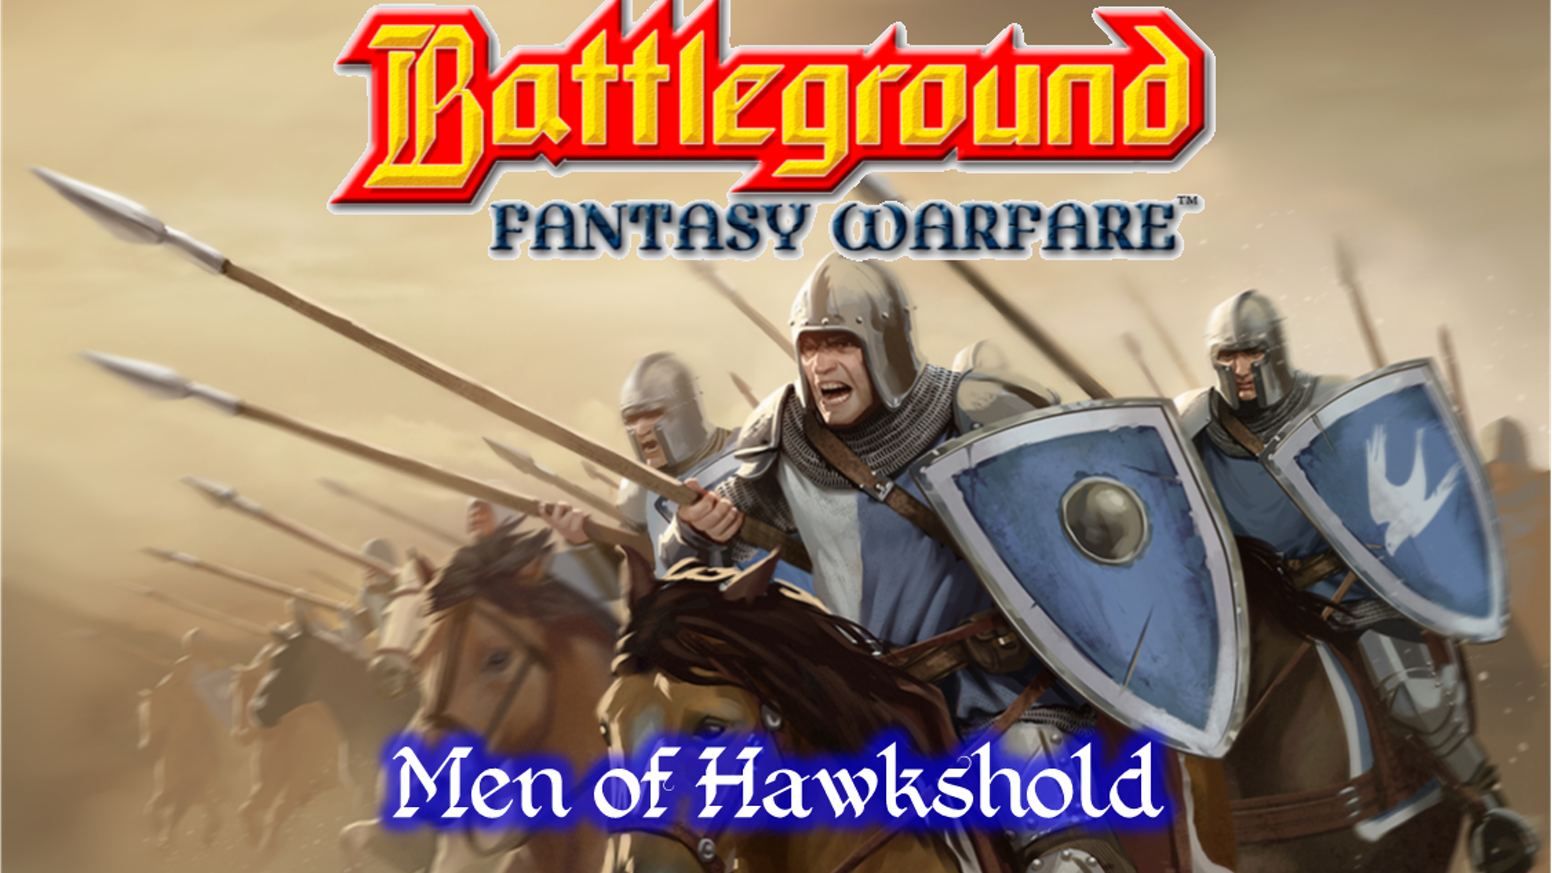 A reprint of The Men of Hawkshold, Battleground Fantasy Warfare's first faction. Featuring all new artwork and updated rules.